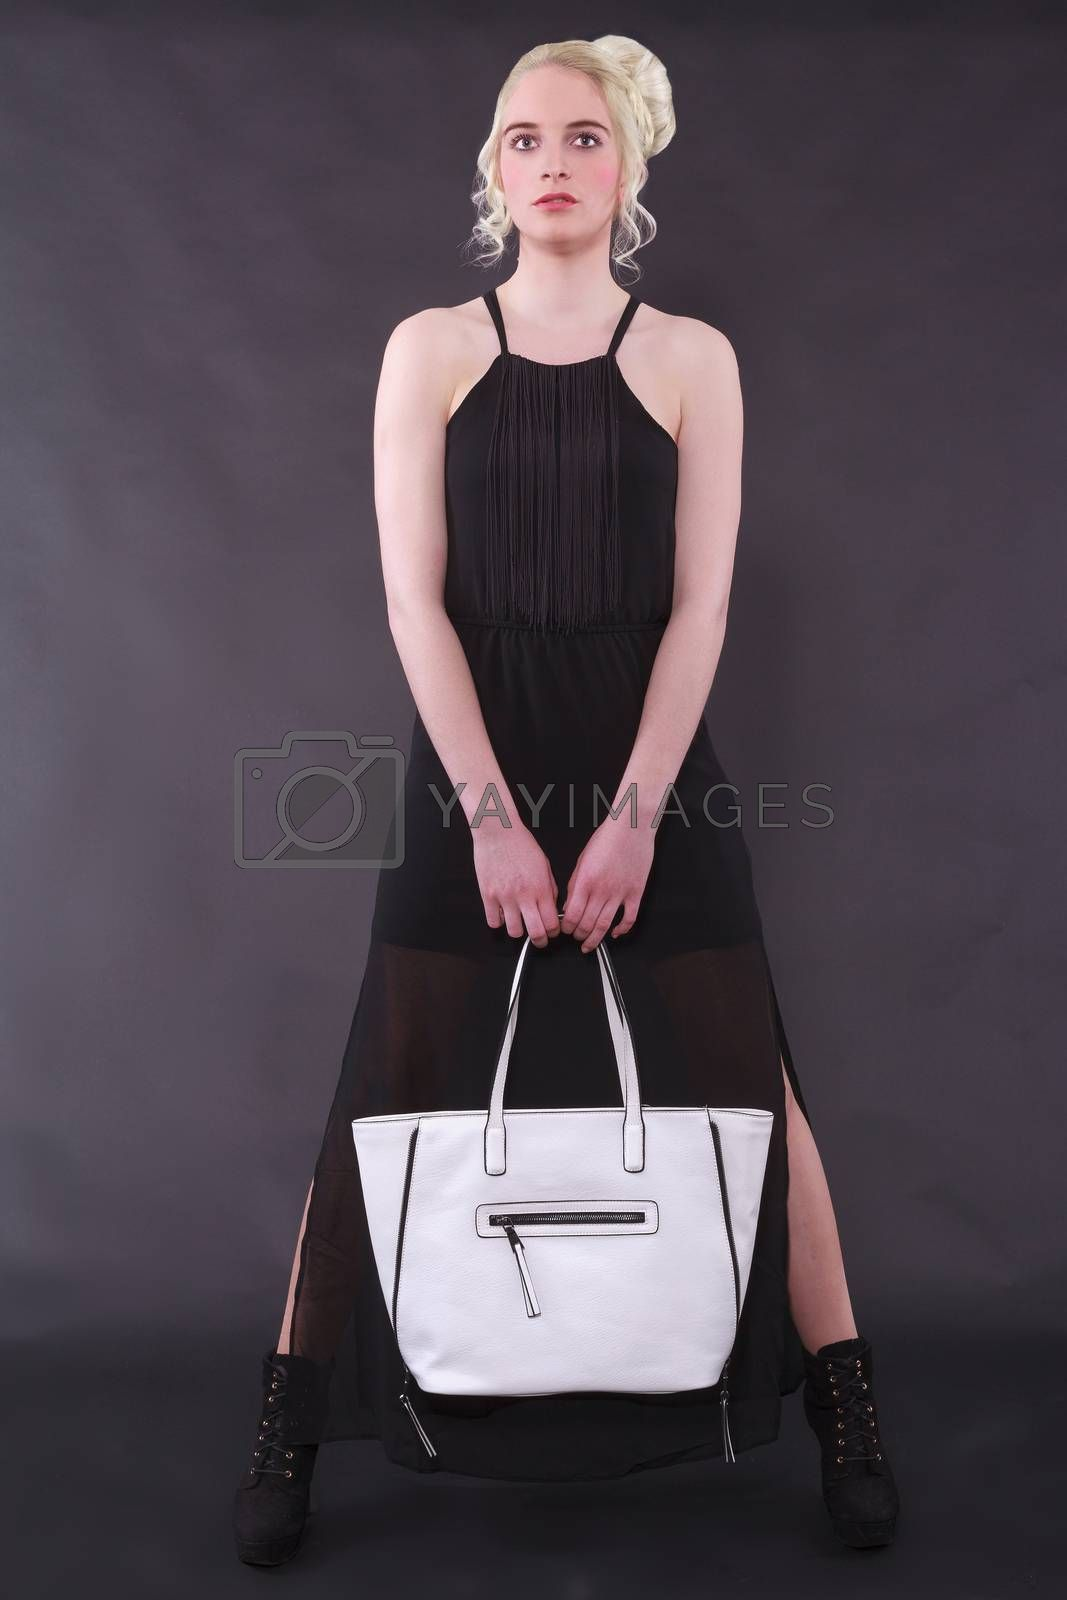 Blond young woman with modern hairstyle standing in black dress and white bag against a black background. Studio Shot.